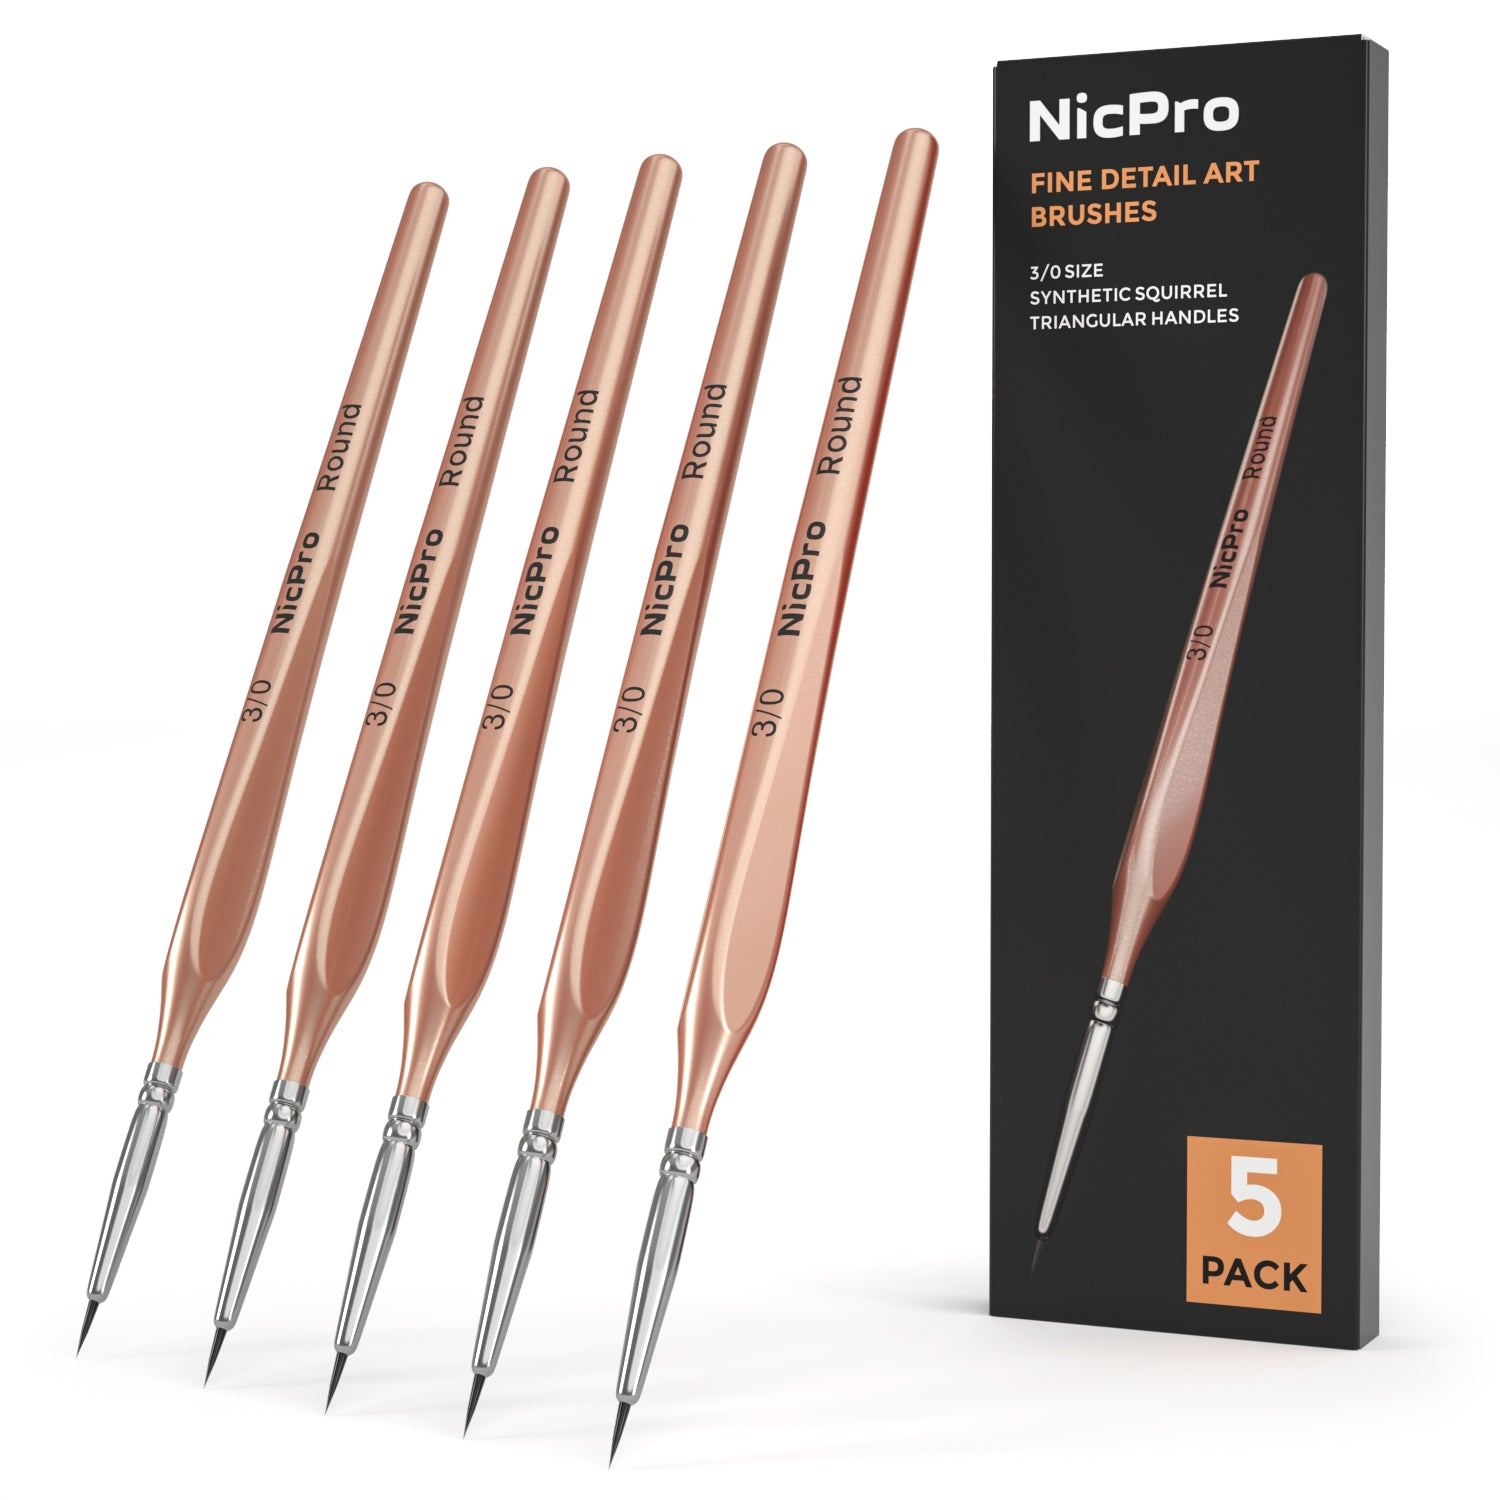 Nicpro Detail Paint Brushes 5 PCS Extra Fine Tip 000 Professional Miniature Painting Artist Set Round 3/0 for Micro Watercolor Oil Acrylic Craft Models Rock Army Paint By Number for Adult